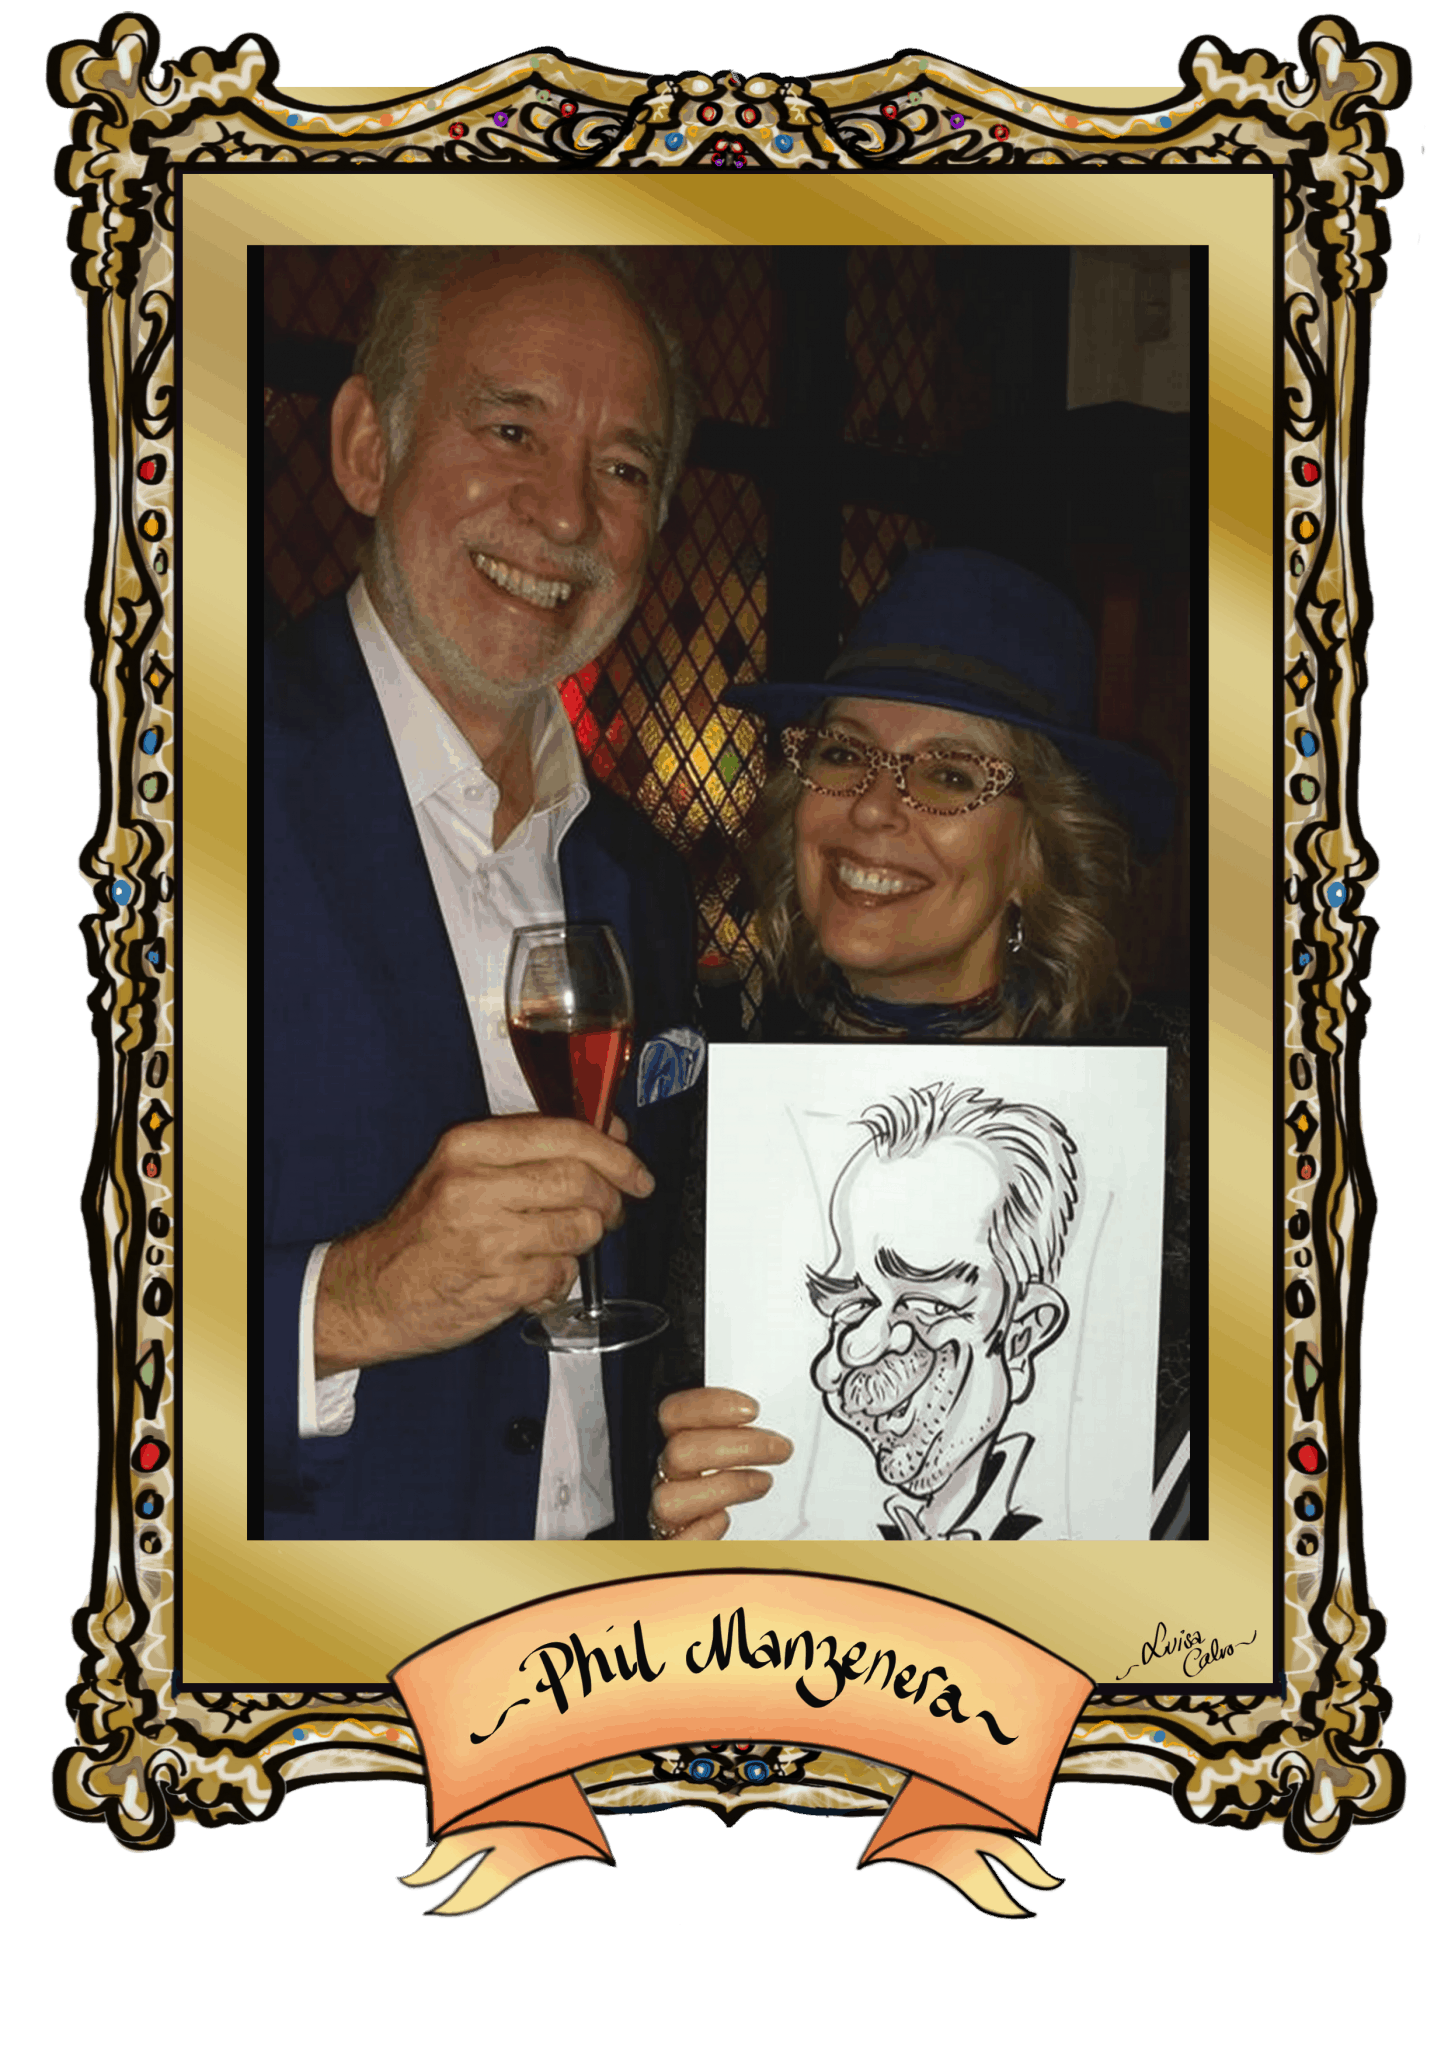 PHIL MANZENERA &CARICATURE BY LUISA CALVO